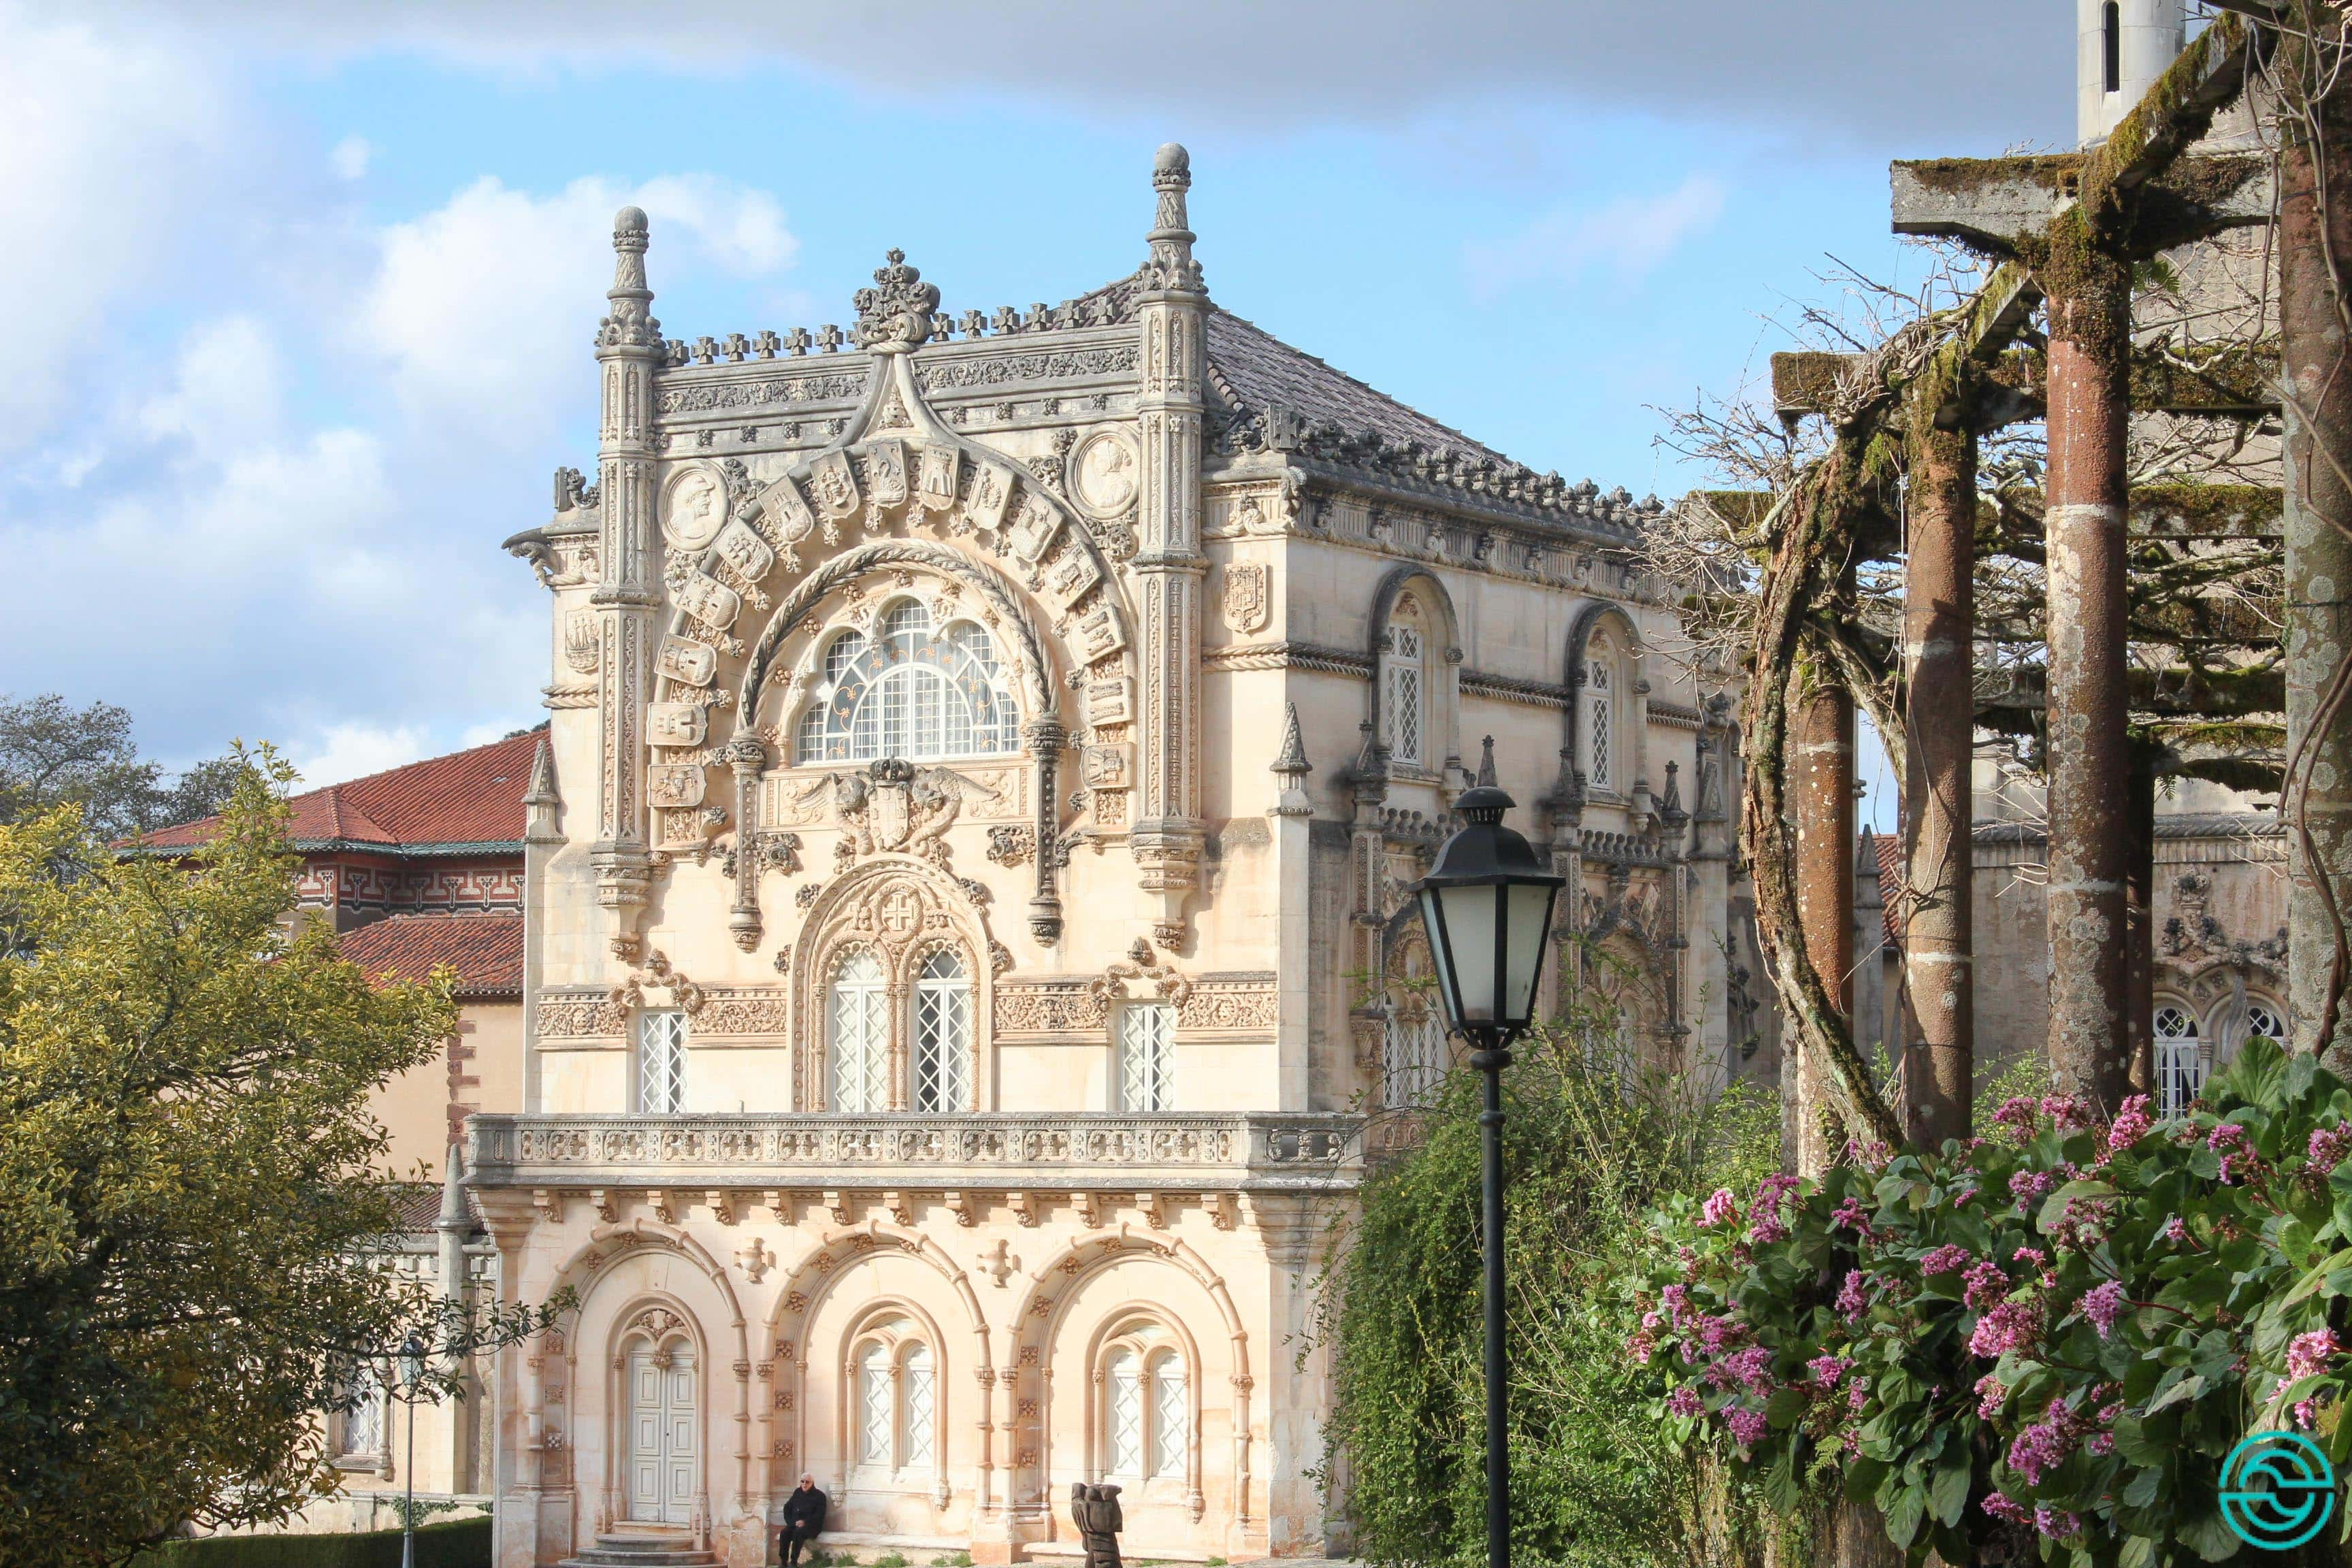 Palácio do Bussaco